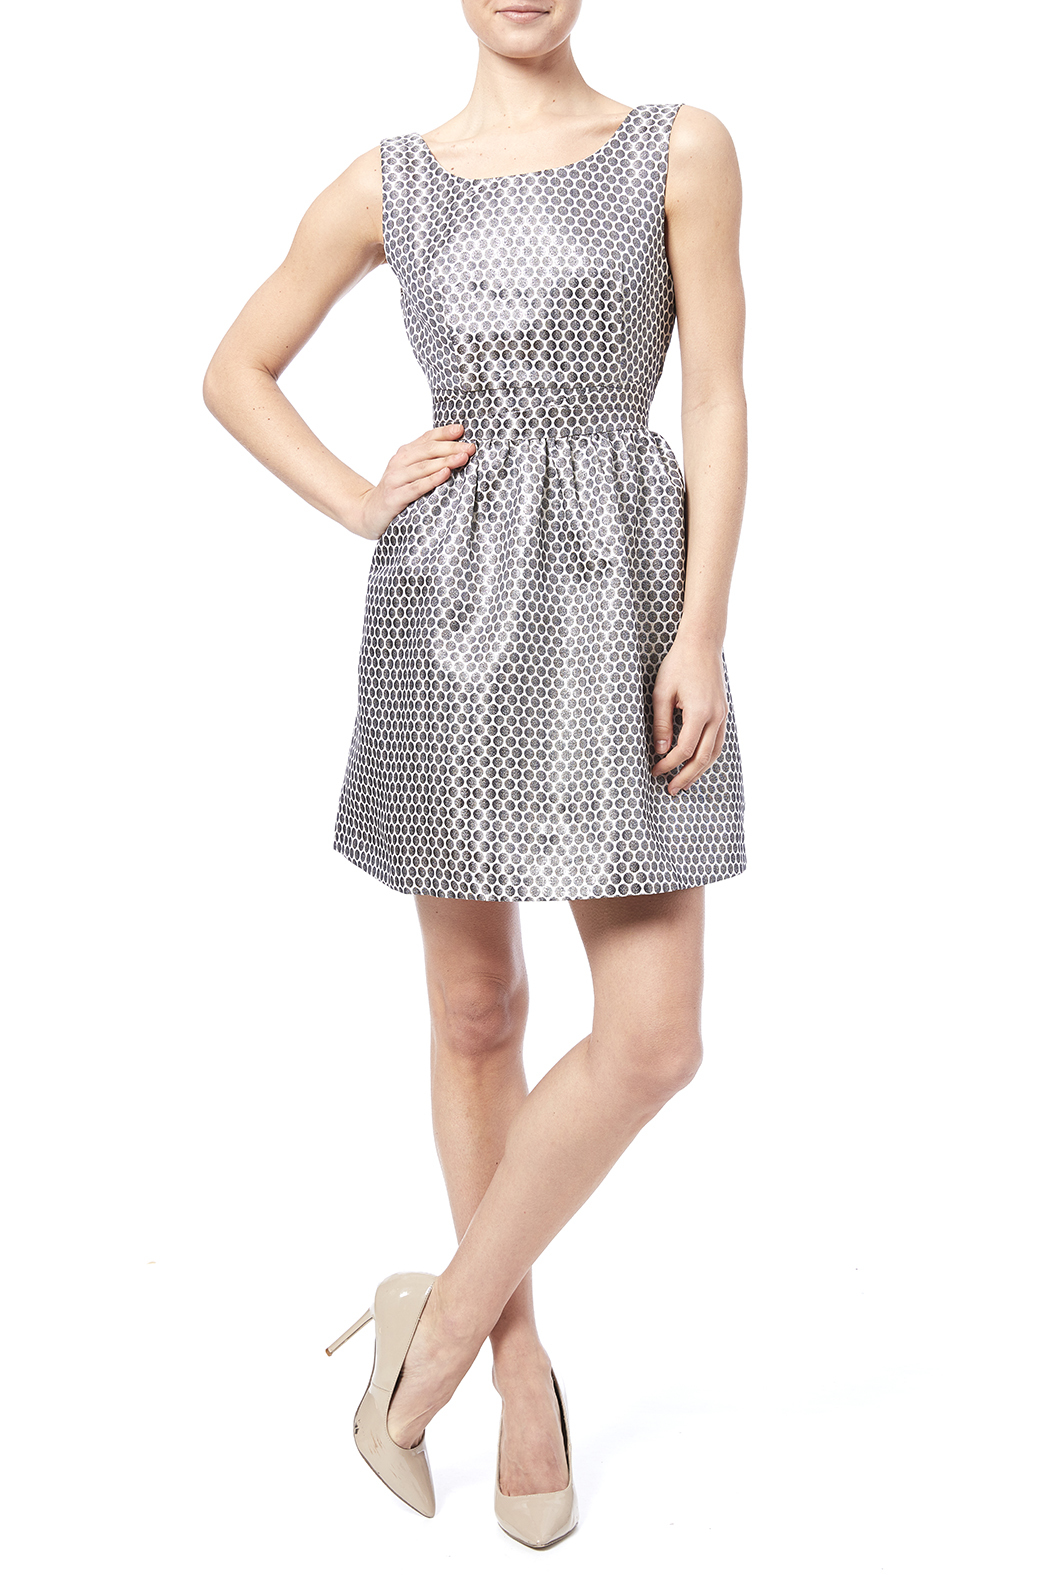 Esley Fit N Flare Dress from Illinois by Maude